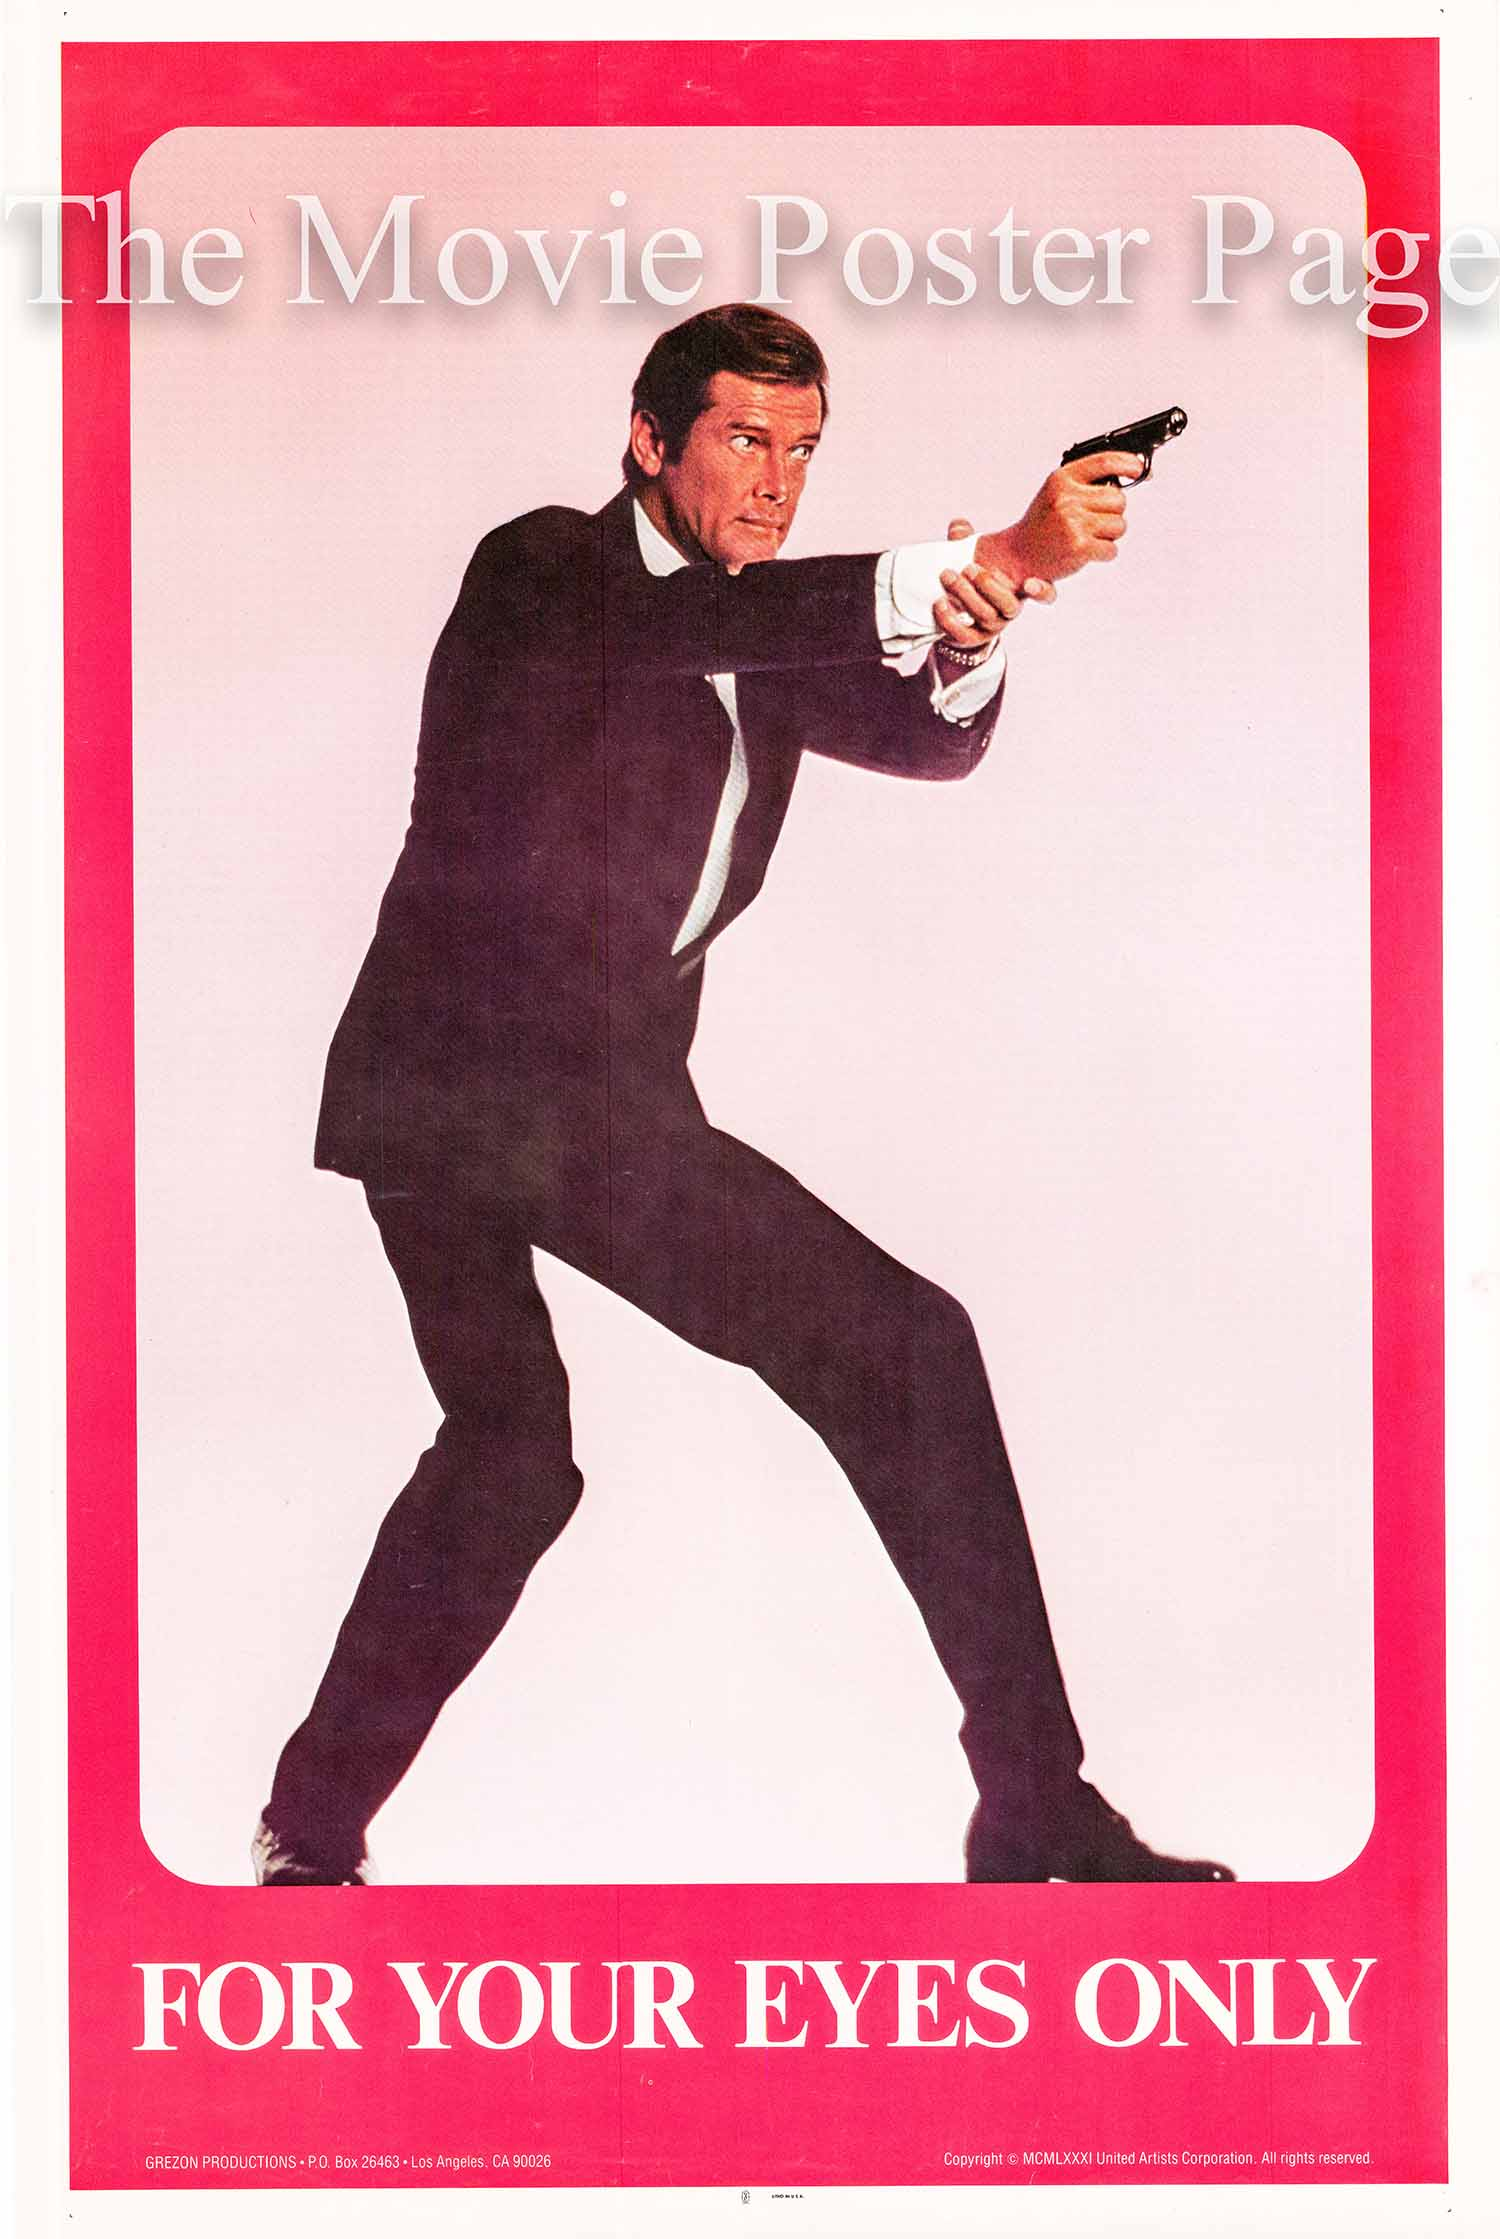 This is an image of a Grezon Productions commercial poster for the 1981 John Glen film For Your Eyes Only starring Roger Moore.